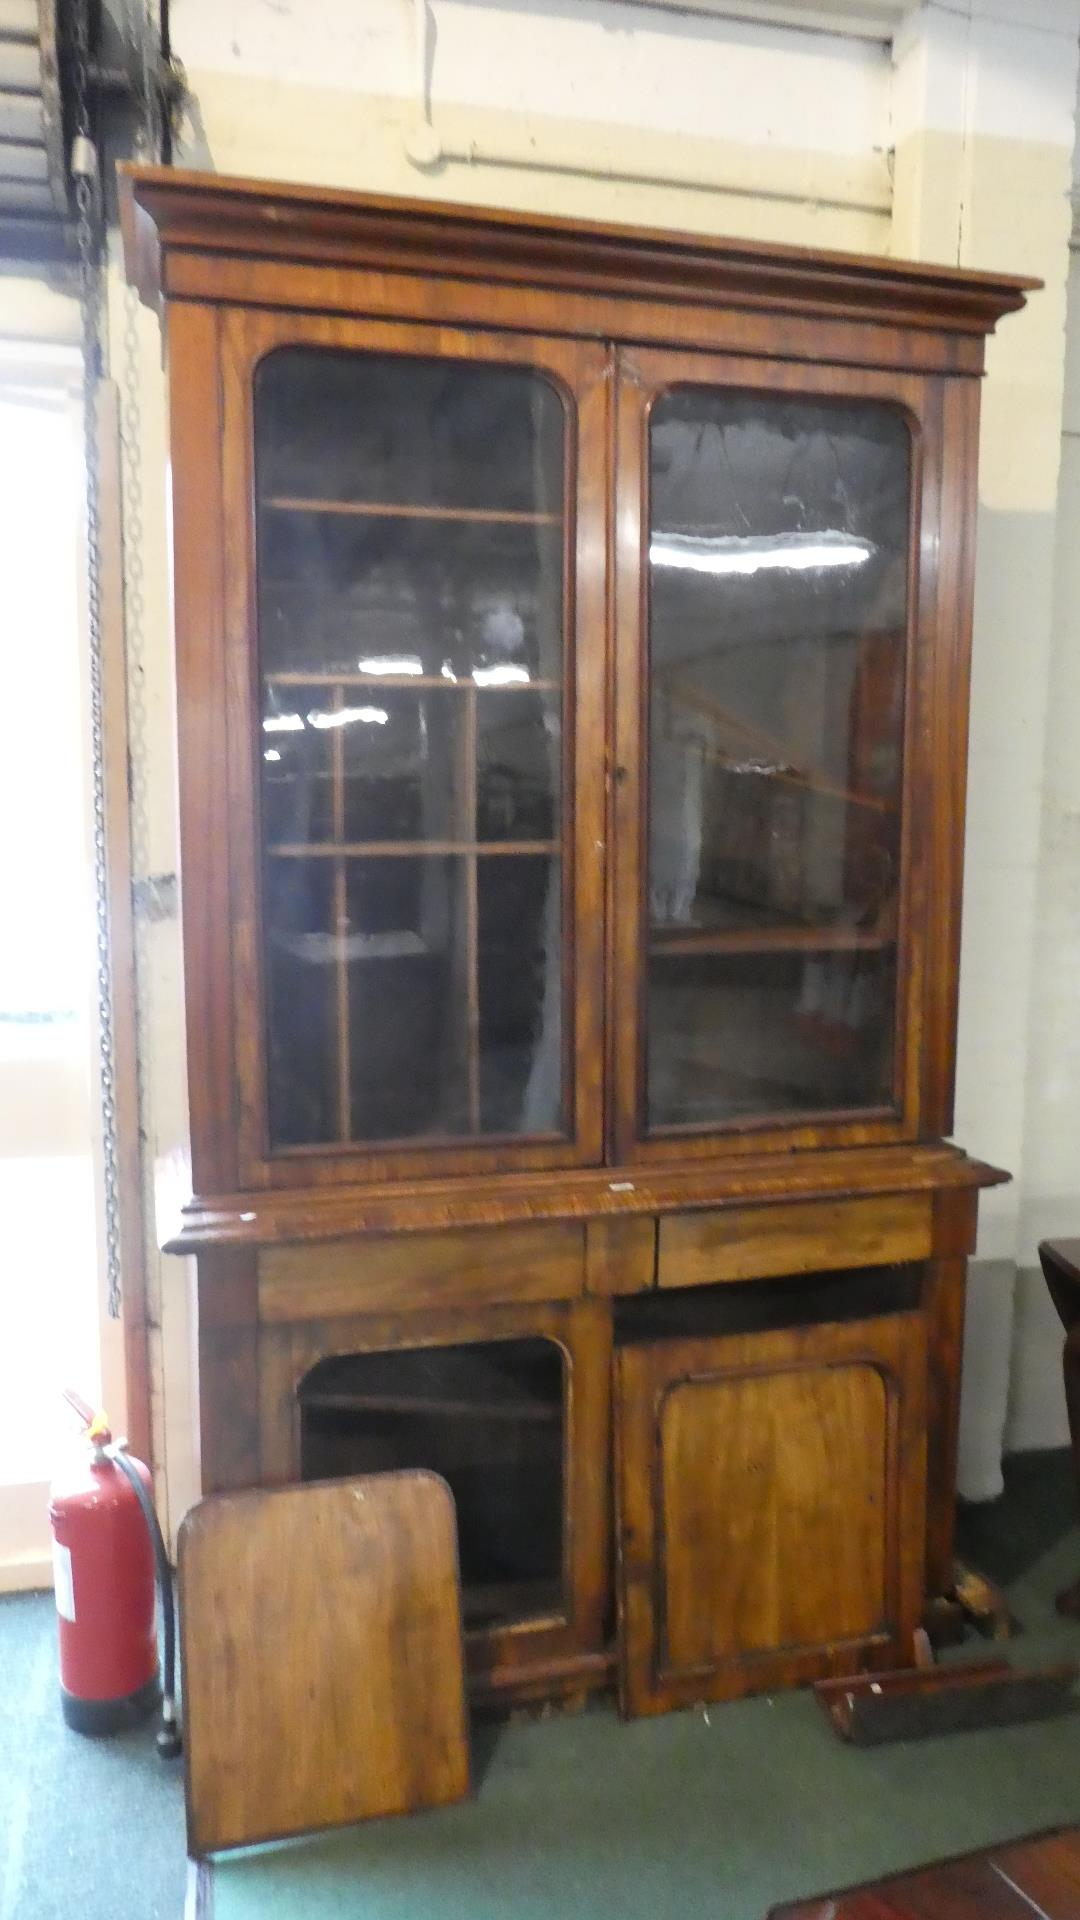 Lot 485 - A Late Victorian Mahogany Library Bookcase for Restoration. Glazed Top Section with Shelves and